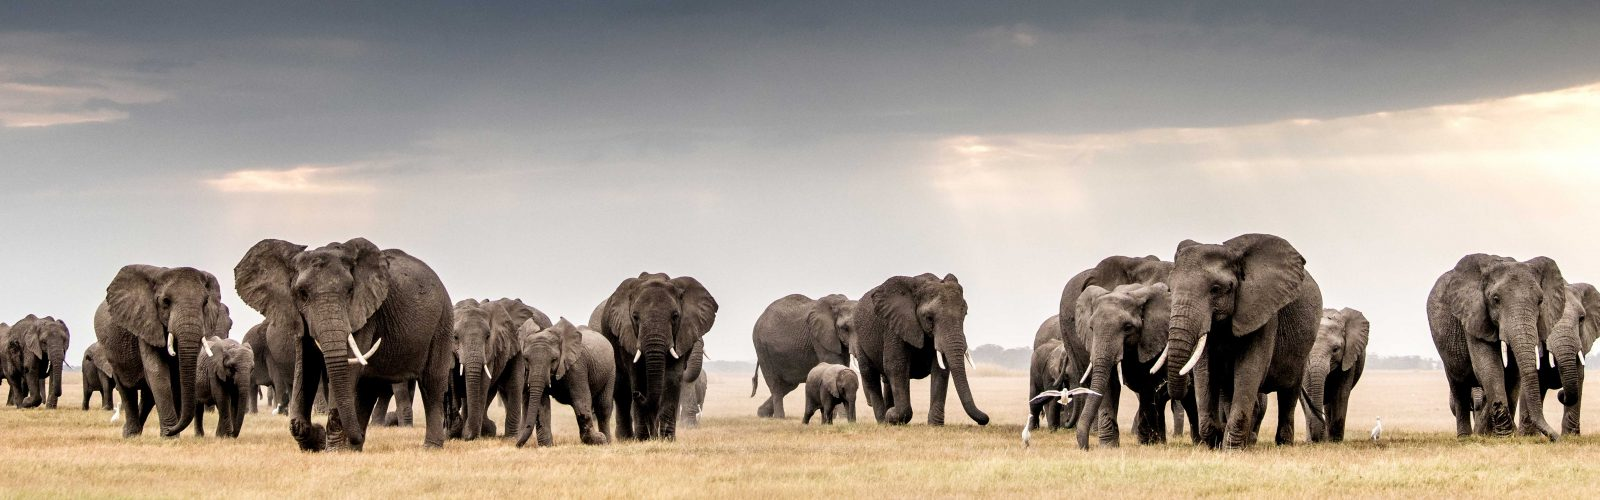 elephant herd photograph by william fortescue